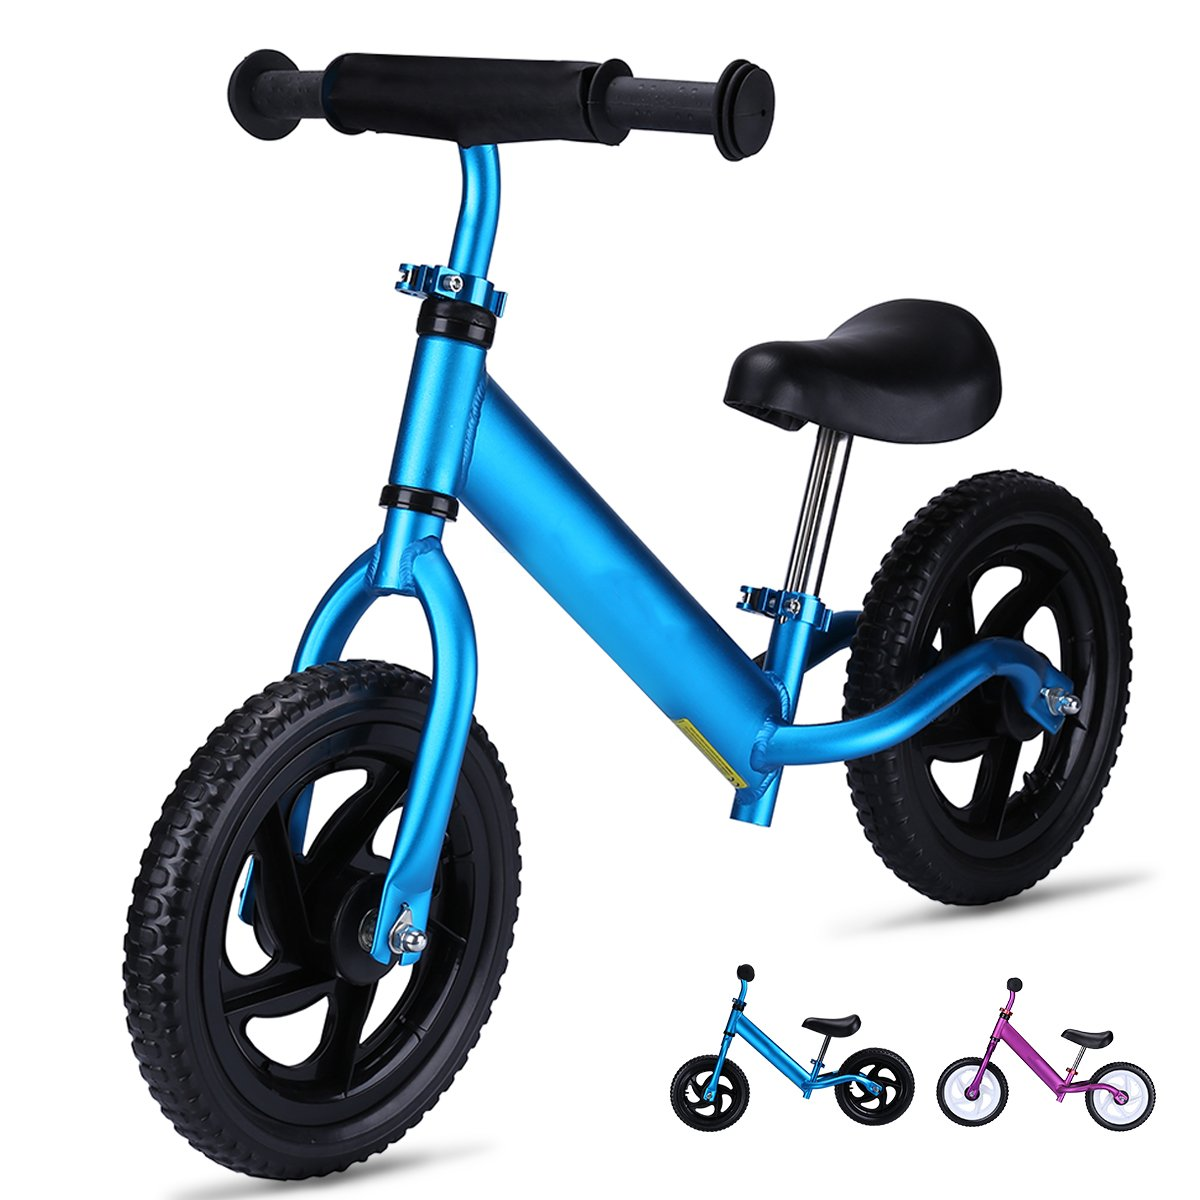 OUTON Balance Bike for Kids Aluminum Frame No Pedal Child Learning Bike 18 Month to 5 Years 4.3lbs